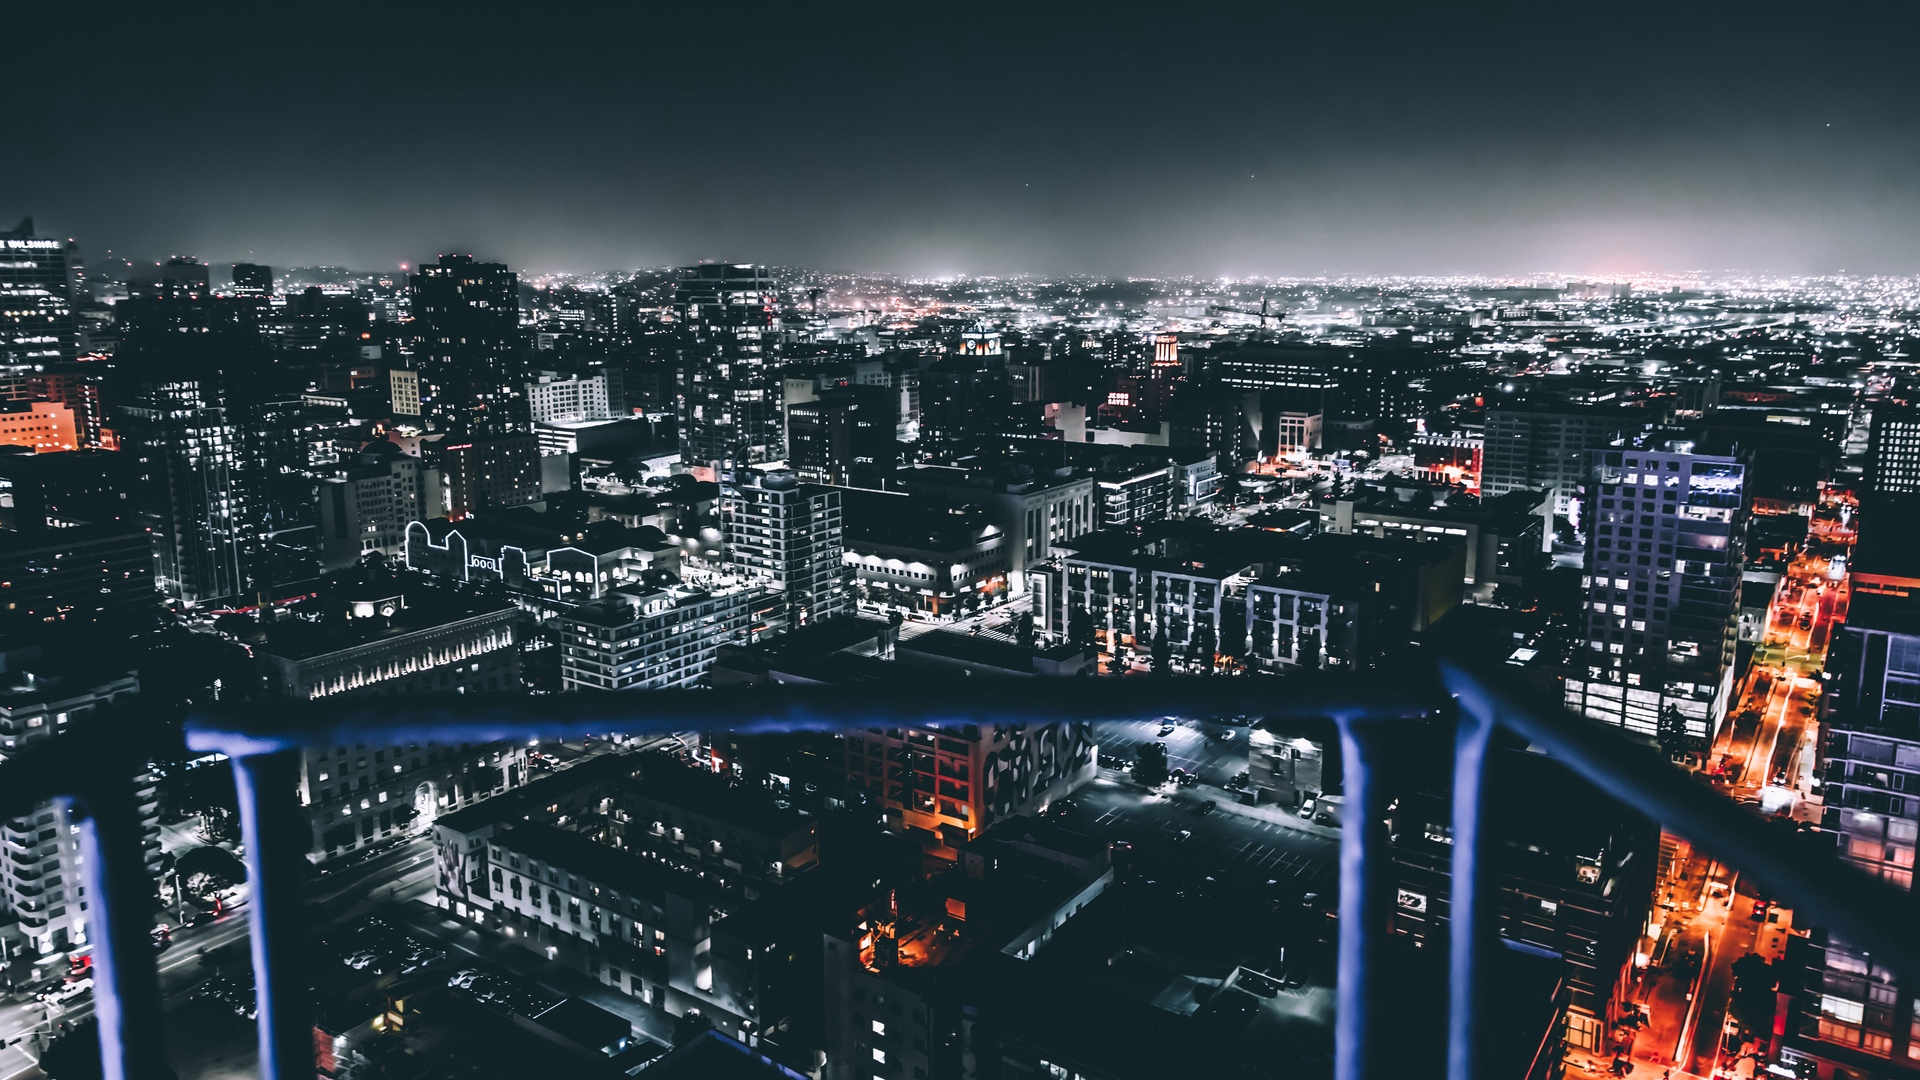 los angeles united states night city buildings x